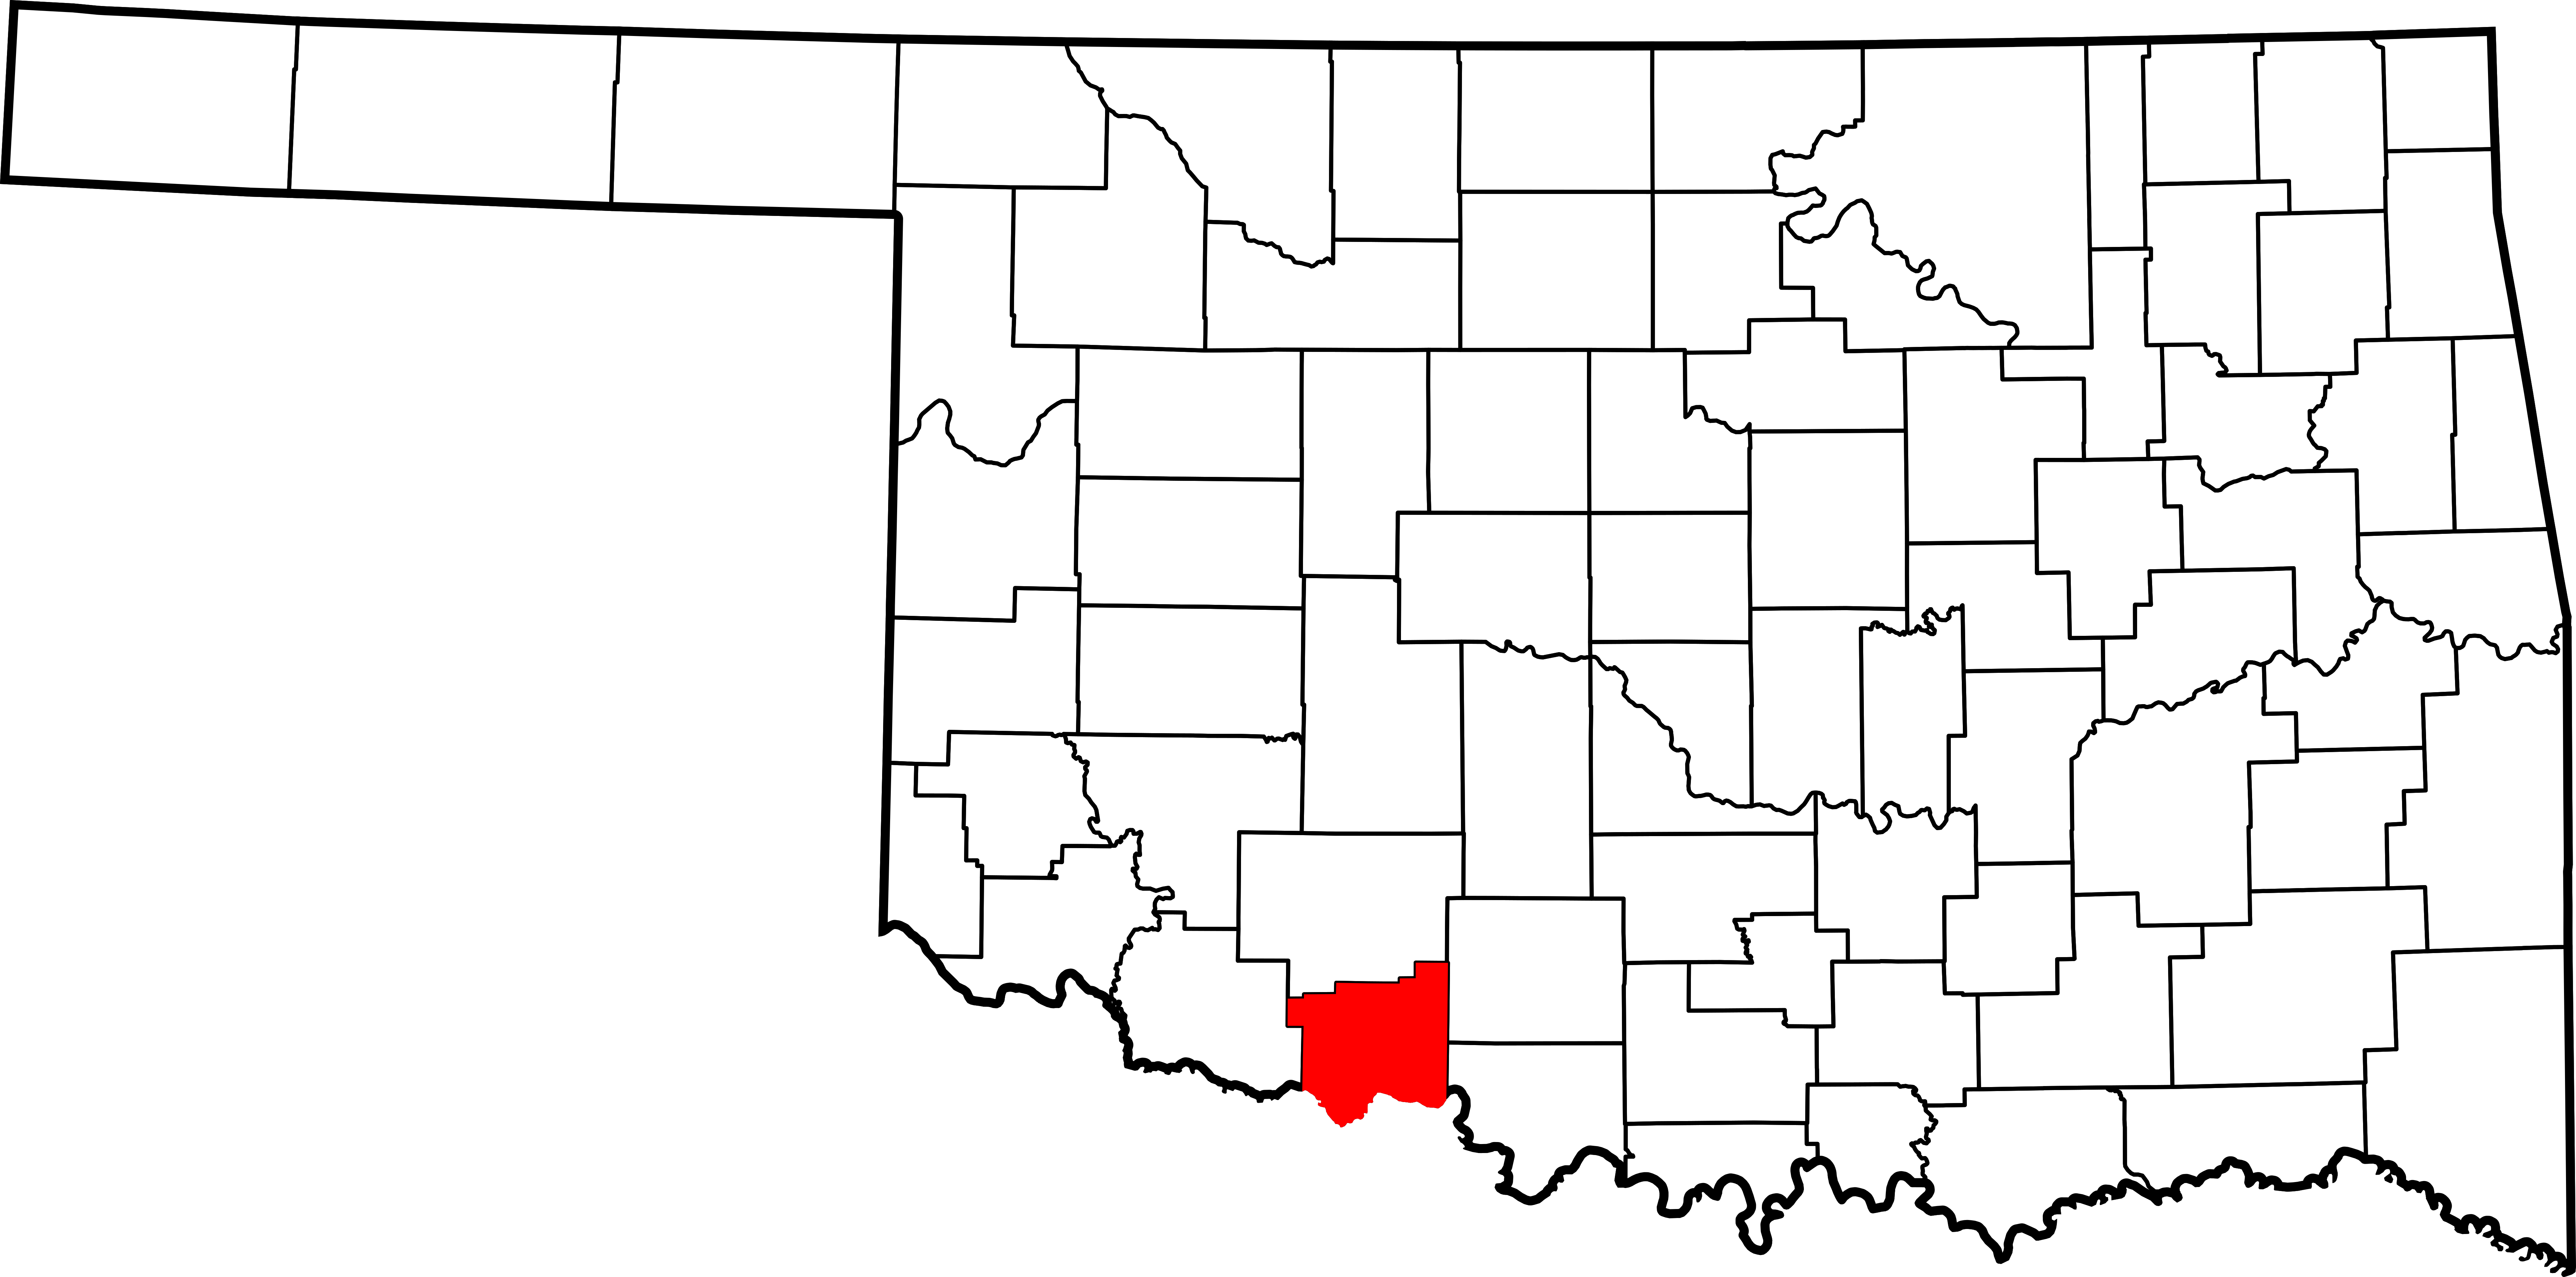 Cotton svg outline. File map of oklahoma